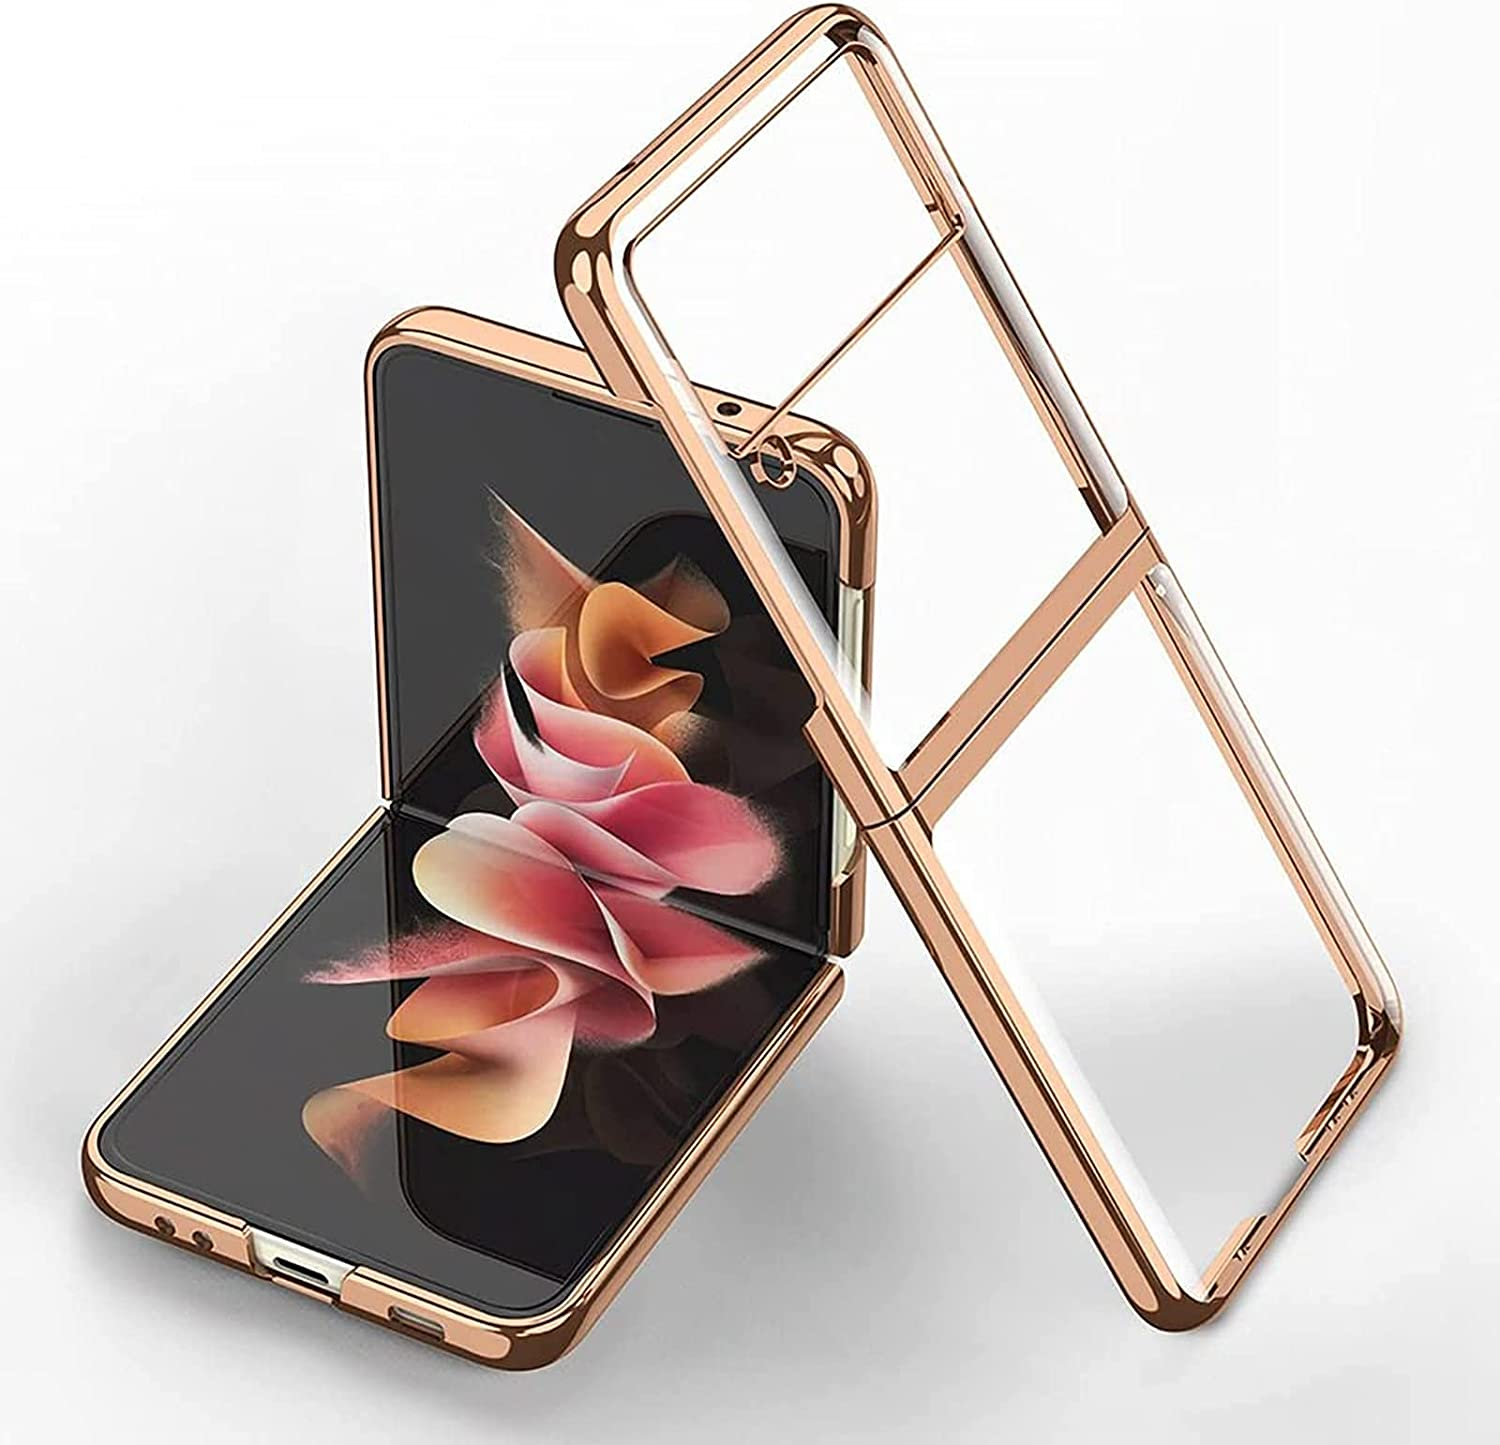 Z Flip 3 Case, Slim Case for Samsung Galaxy Z Flip 3, Luxury Transparent Plating PC Crystal Cove Finish Anti-Scratch Shockproof Protective Case for Samsung Galaxy Z Flip 3 5G. (Gold)